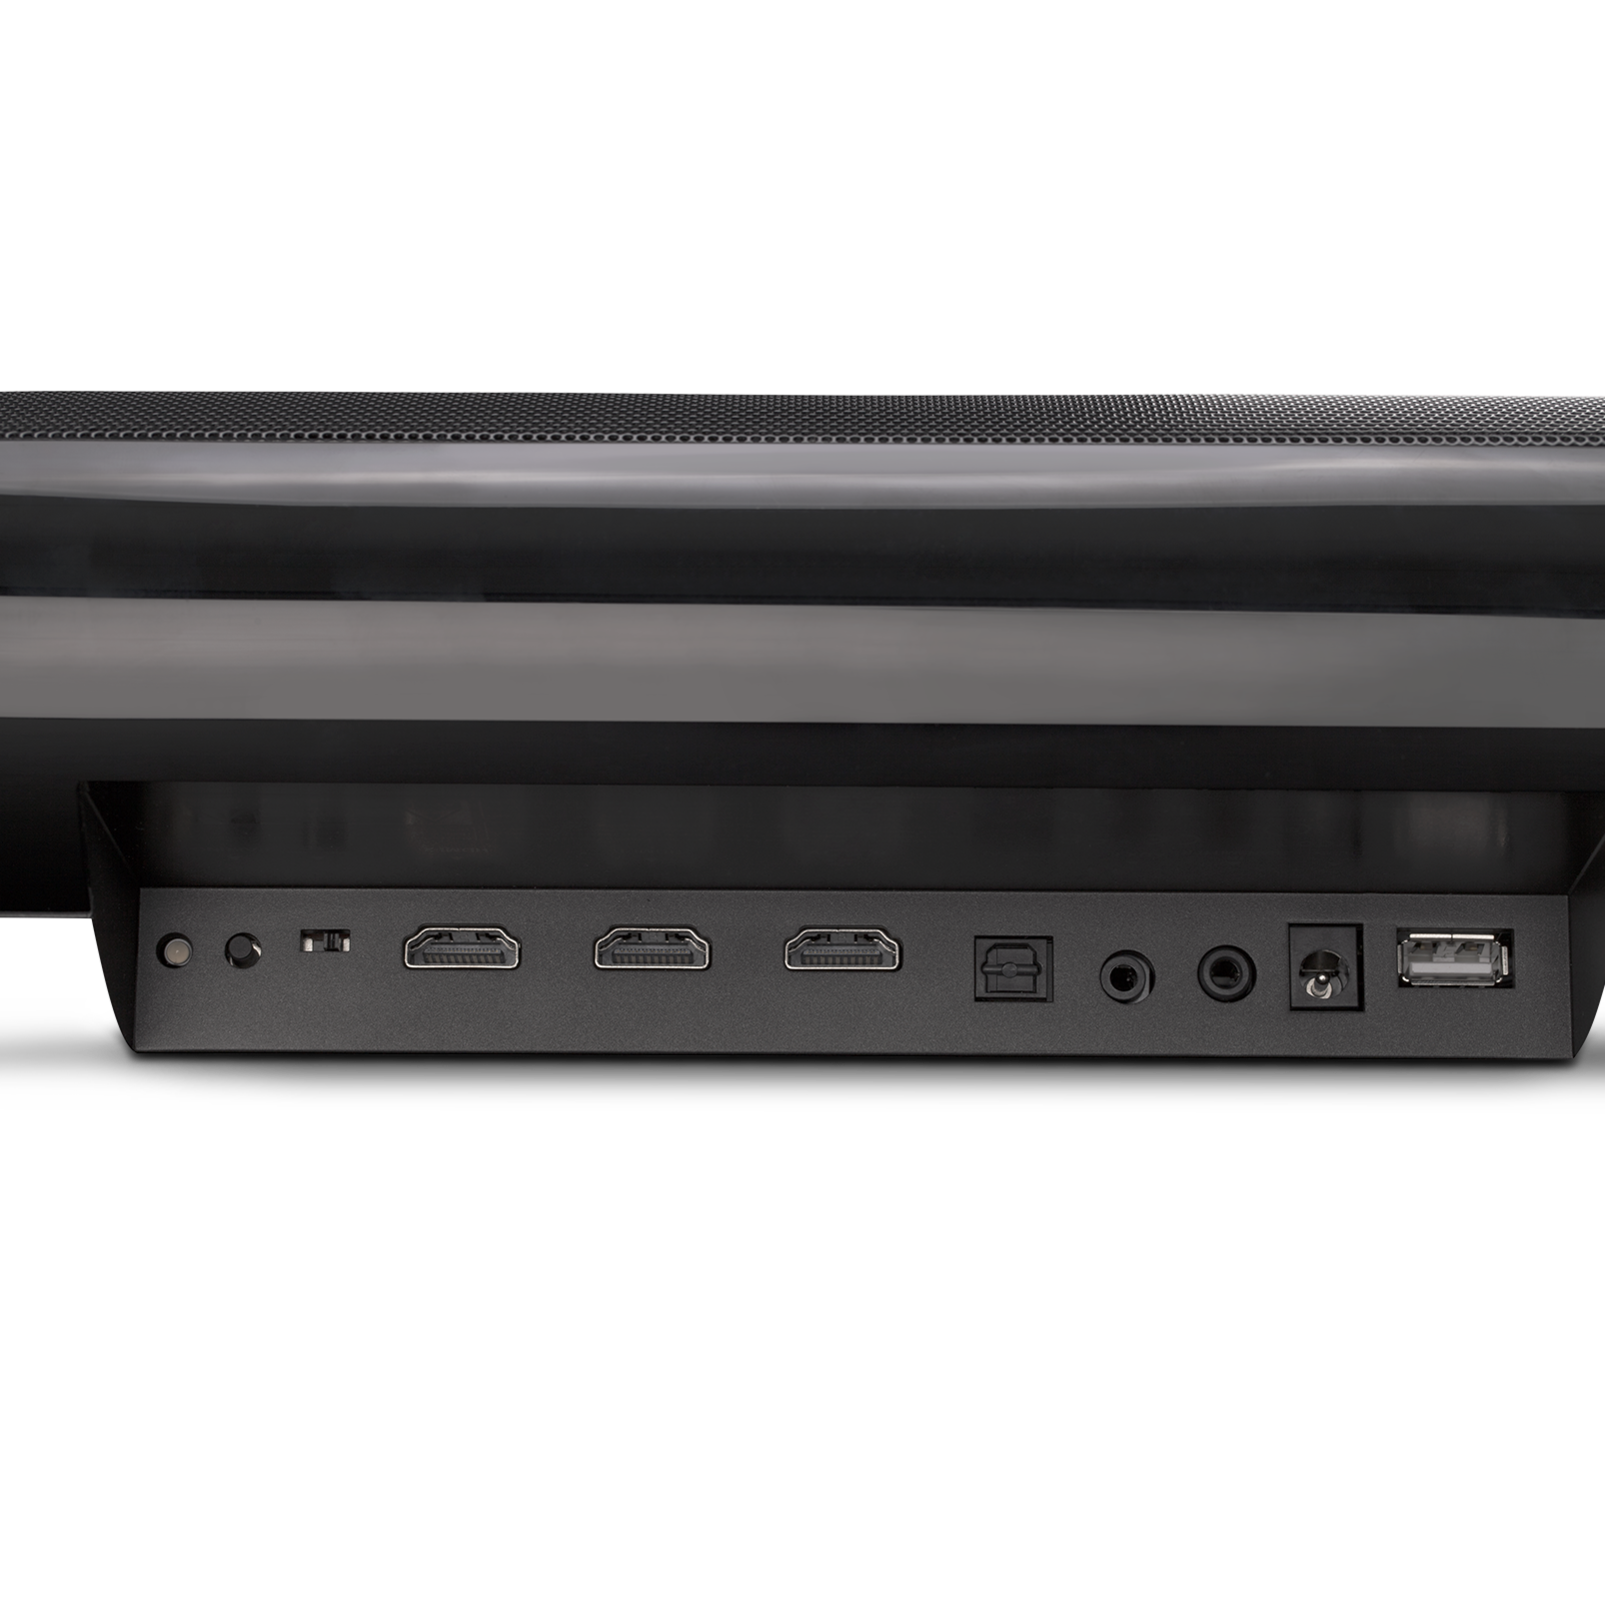 SB 26 - Black - Advanced Soundbar with Bluetooth® and powered wireless subwoofer - Detailshot 4